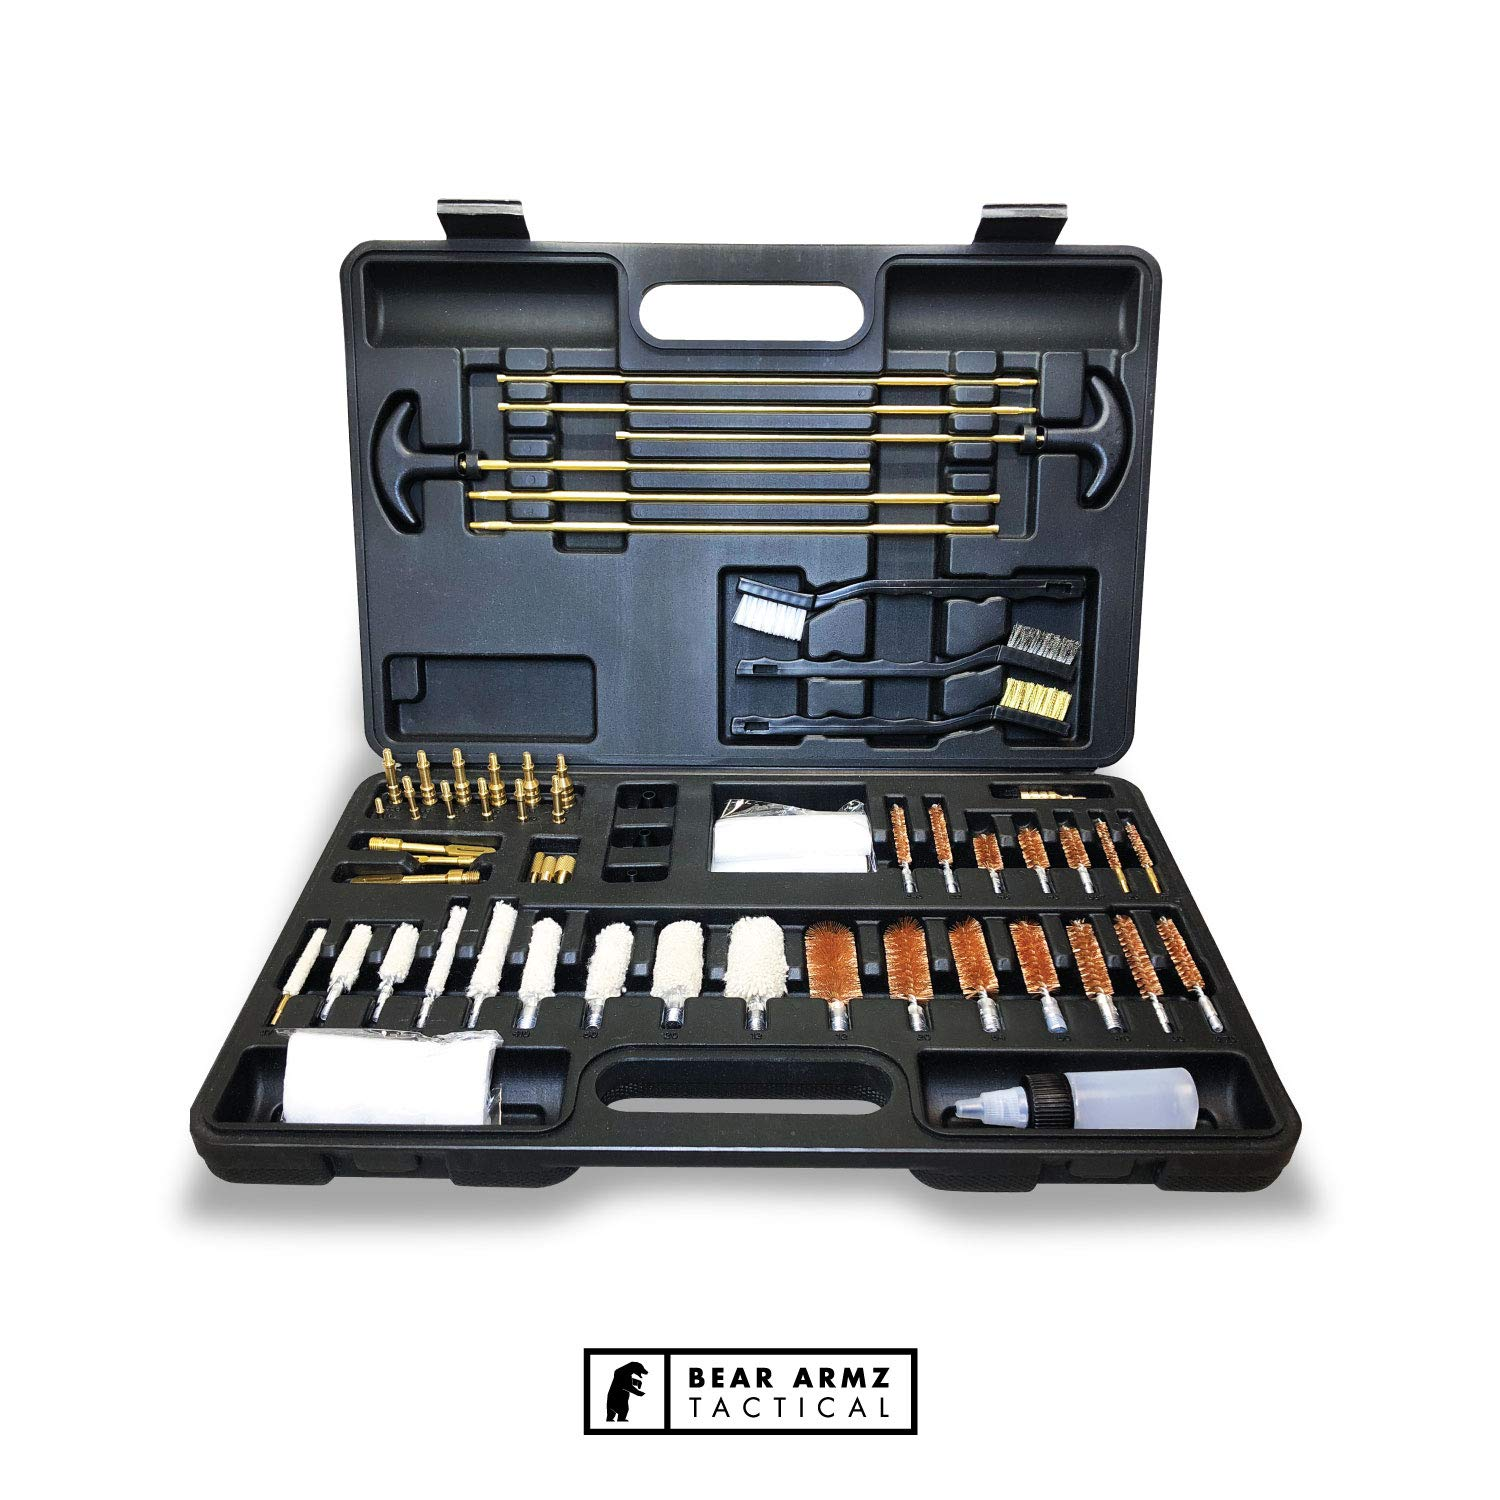 Bear Armz Tactical Gun Cleaning Kit I Gun Cleaning Kit for Handguns, Rifles, Muzzle Loaders, Shotguns and Pistols I Works with All Calibers .17- .50 Cal (Black Case with Brass Jags and Loops)